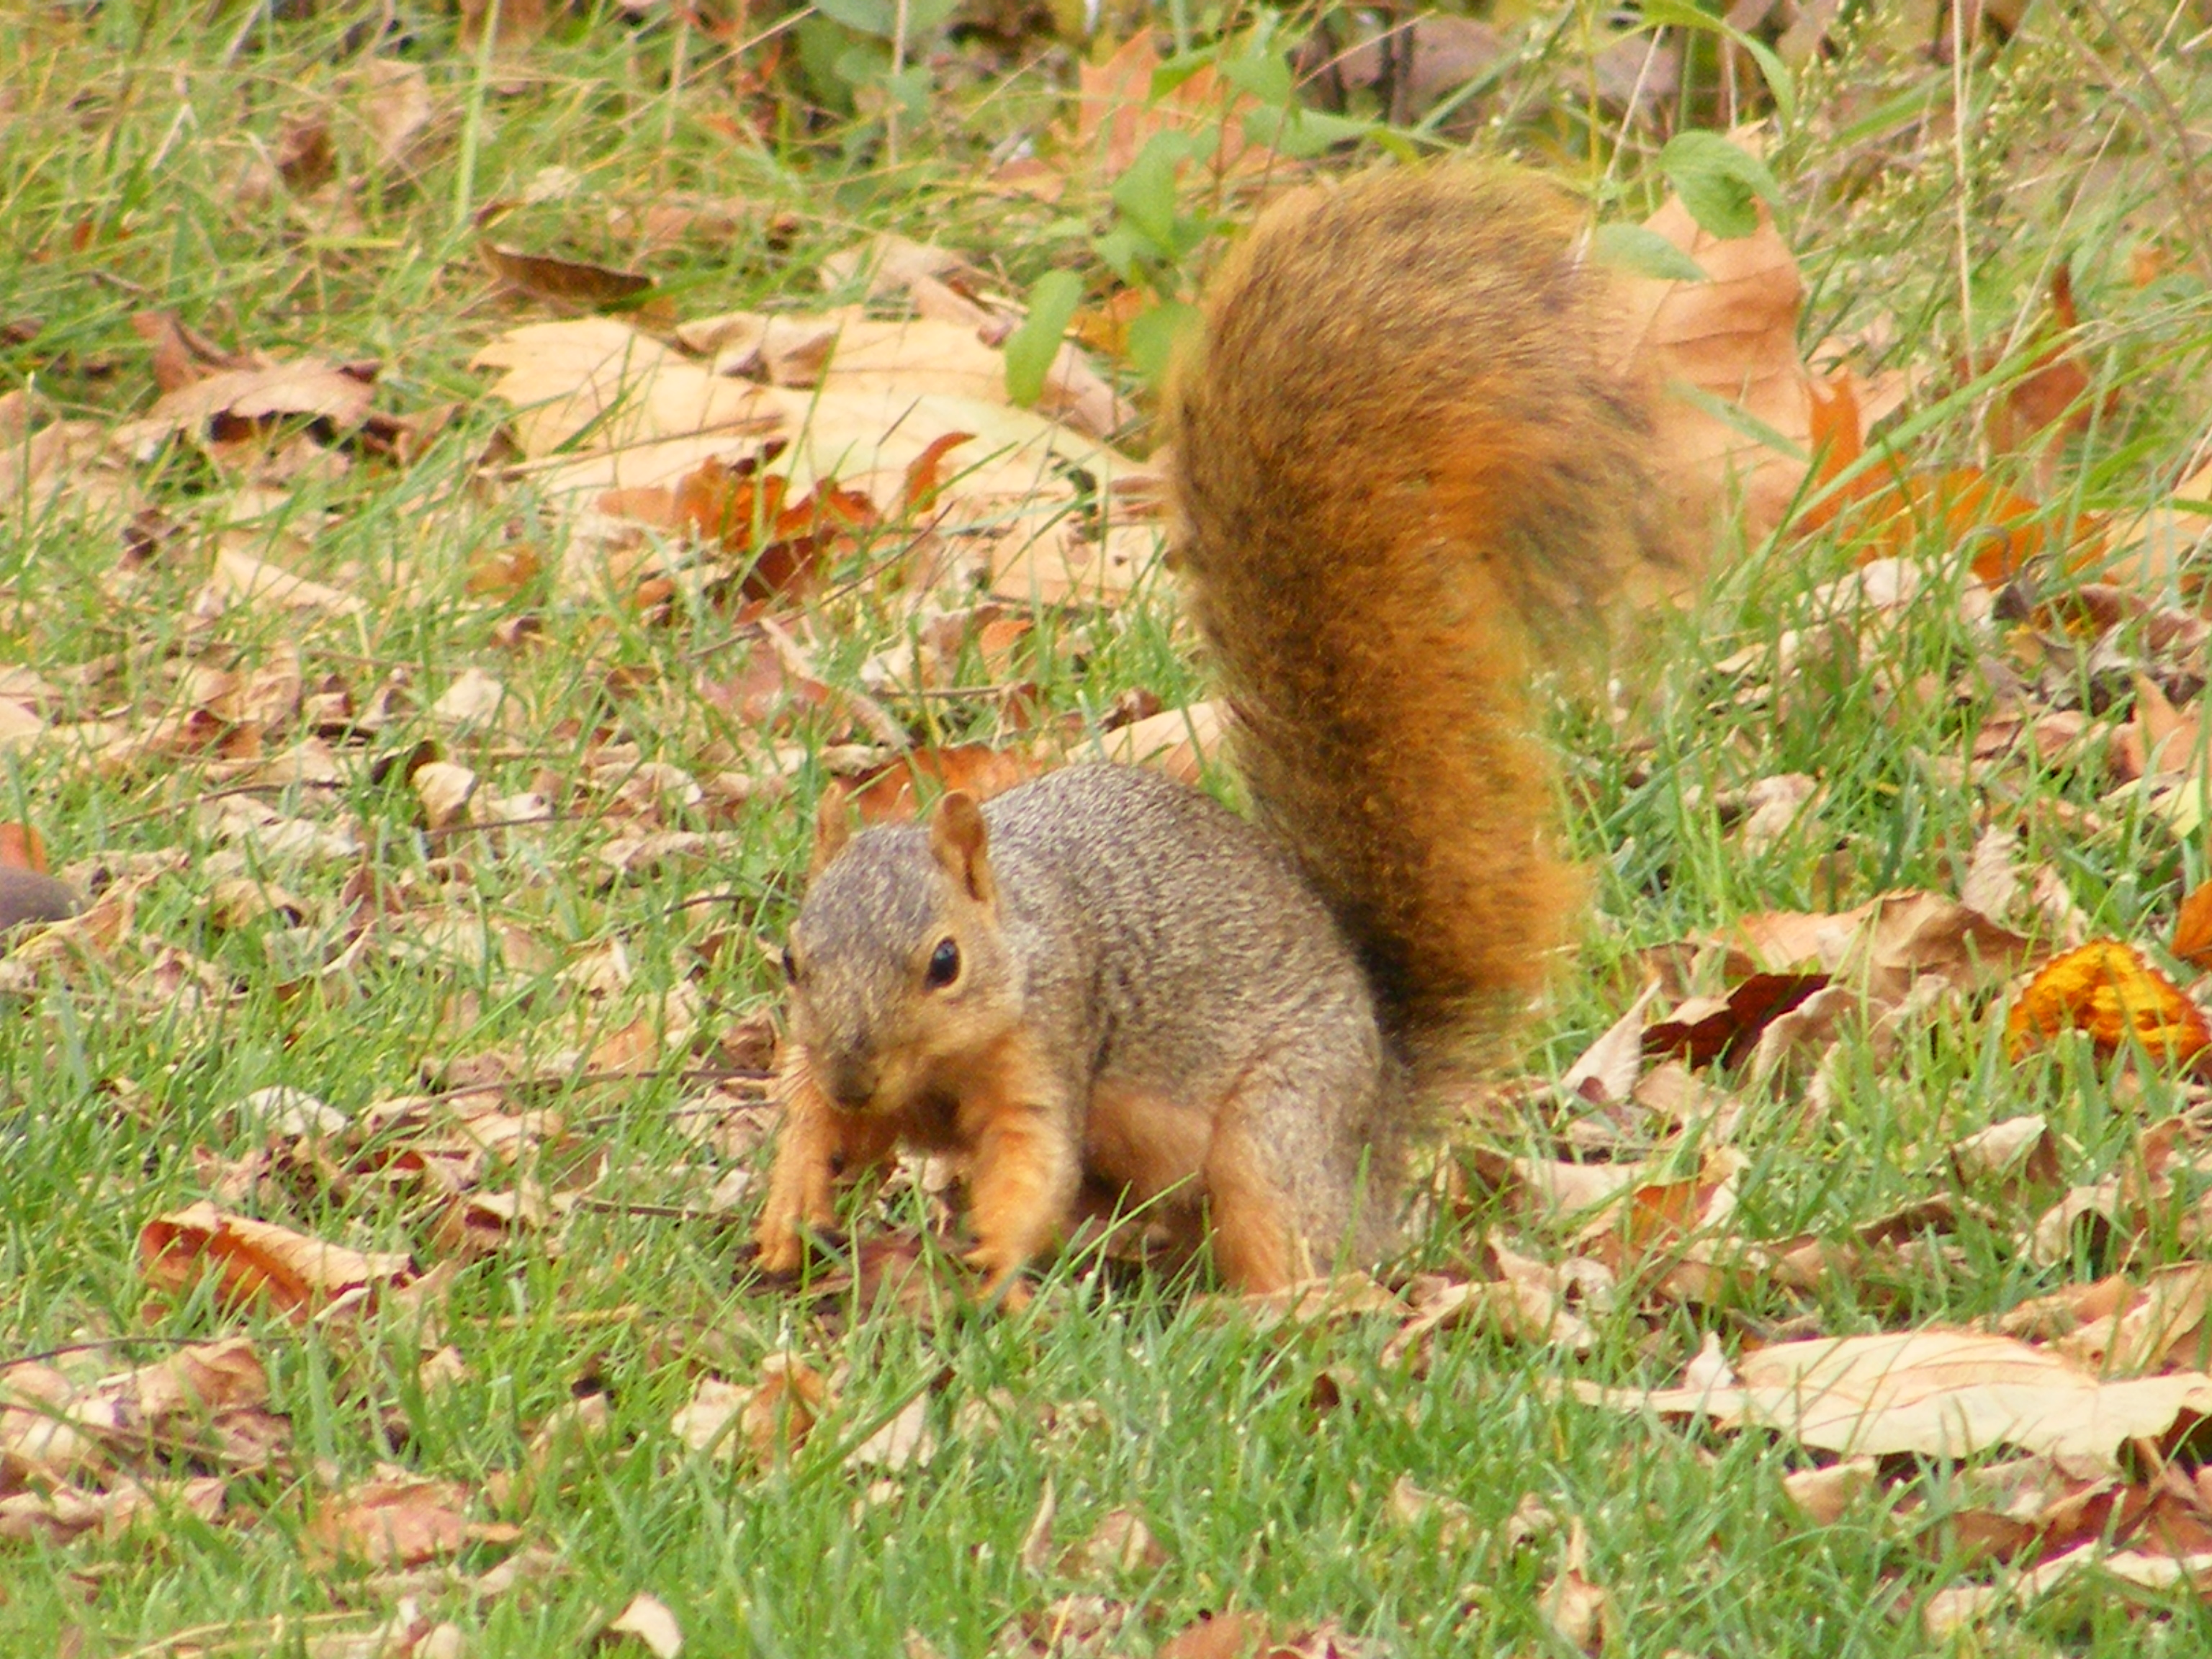 Foraging fox squirrels | The Life of Your Time